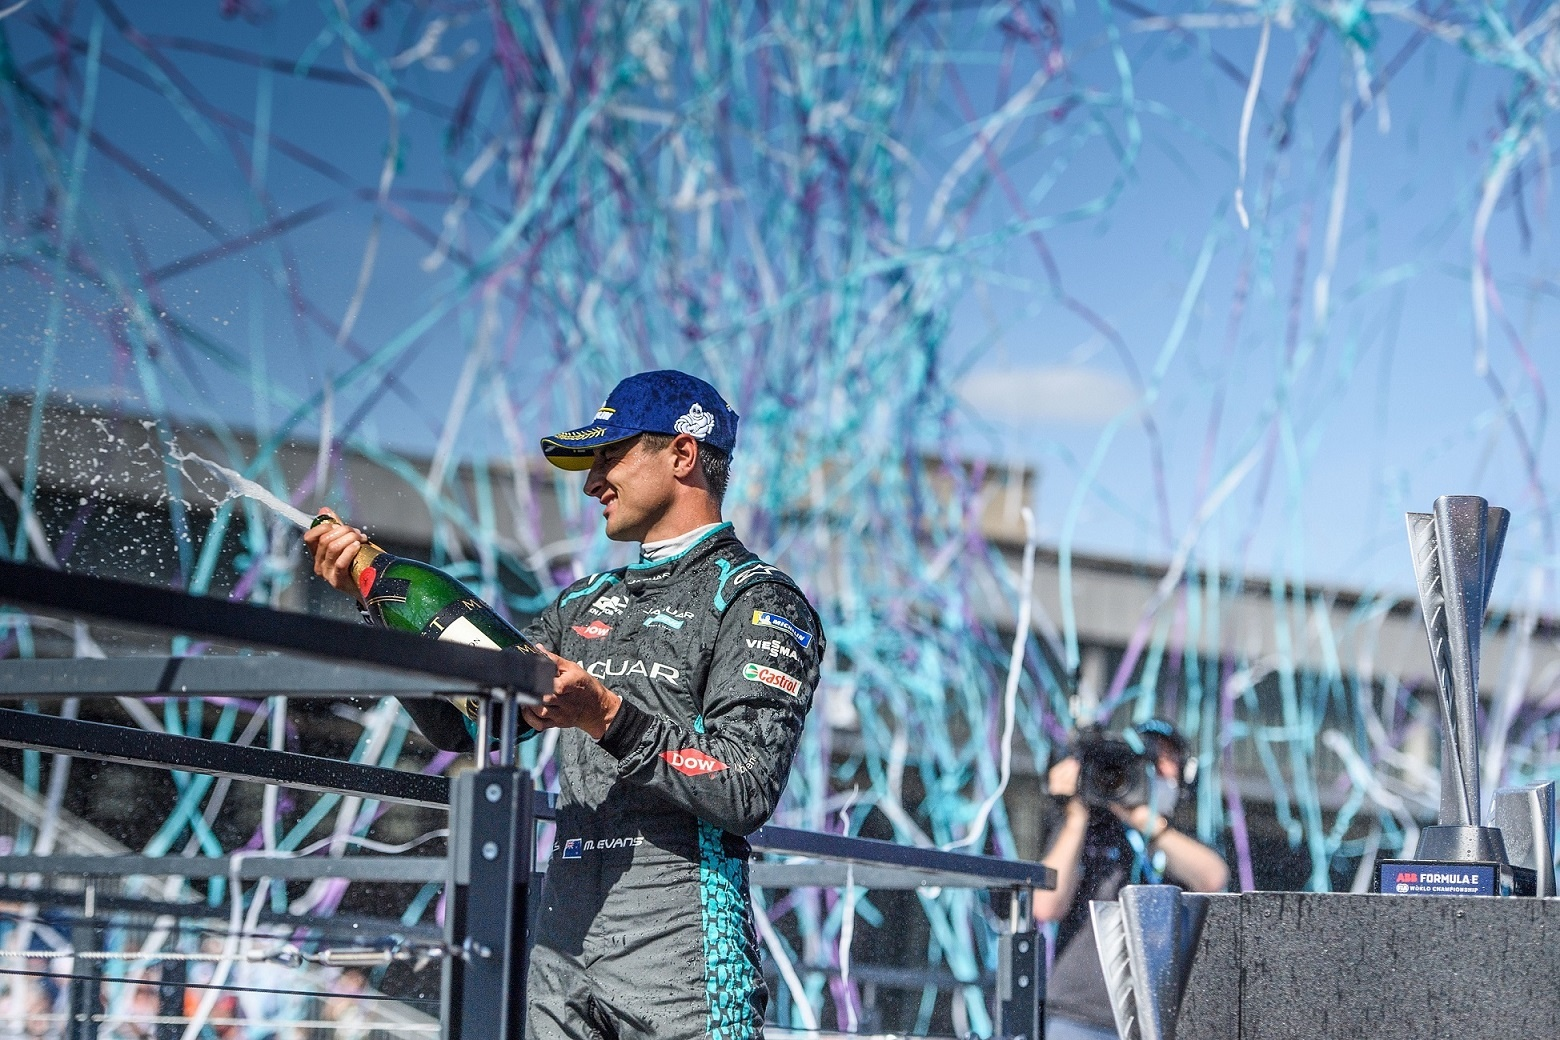 Mitch Evans Secures His Fifth Podium For Jaguar Racing To Take The Lead In The Formula E Teams' Standings